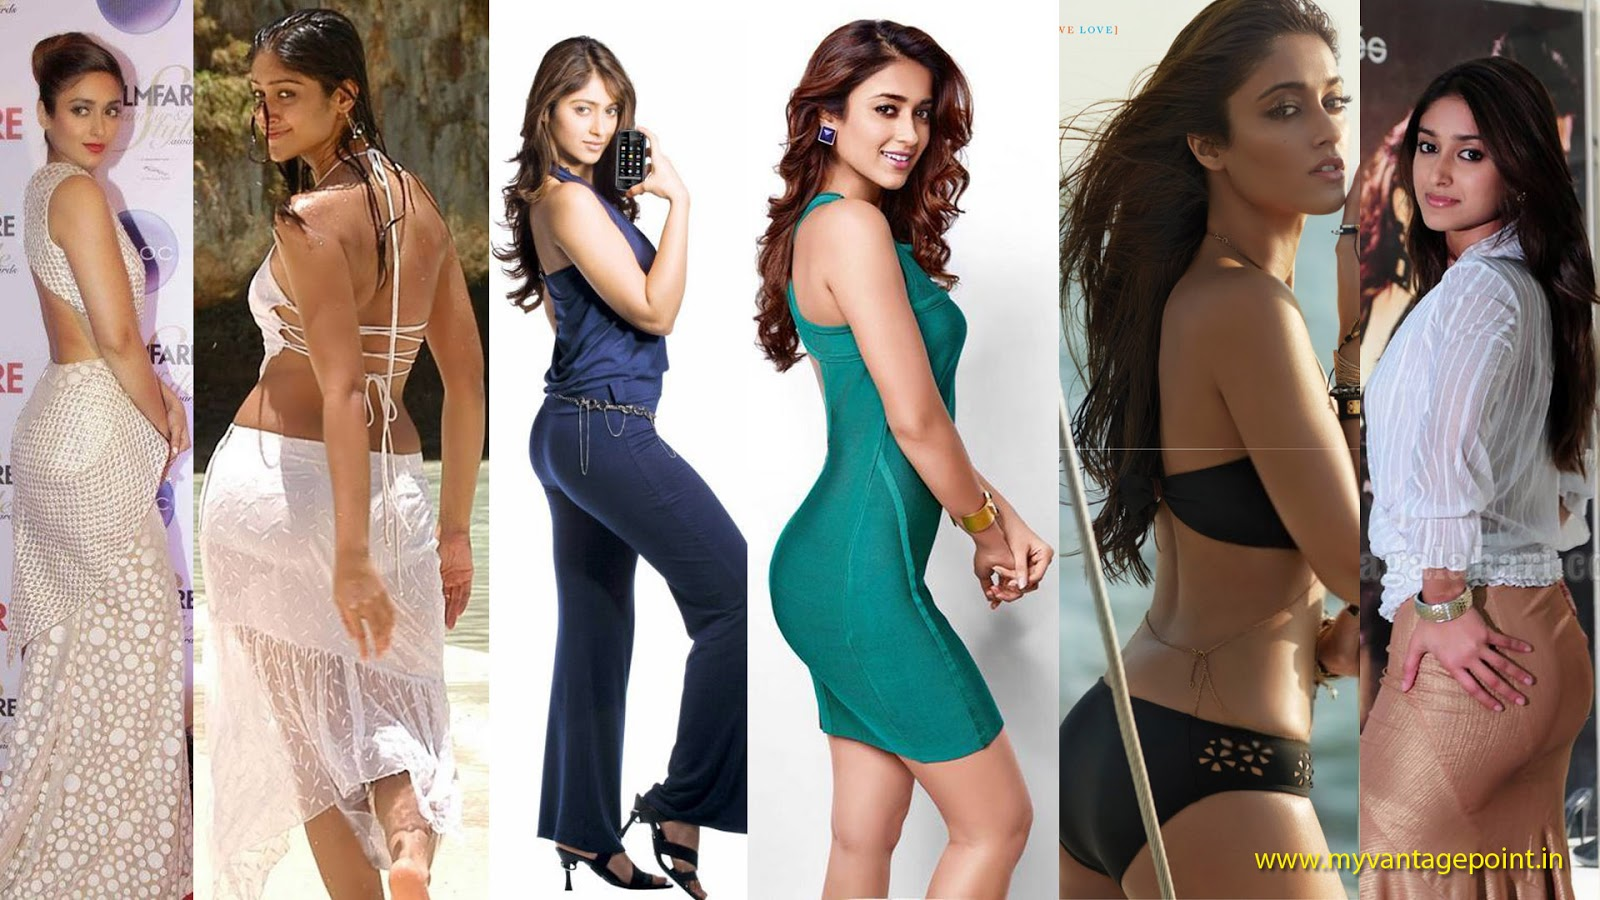 Kareena Kapoor New Hd Wallpaper Top 10 Sexiest Butts In Bollywood